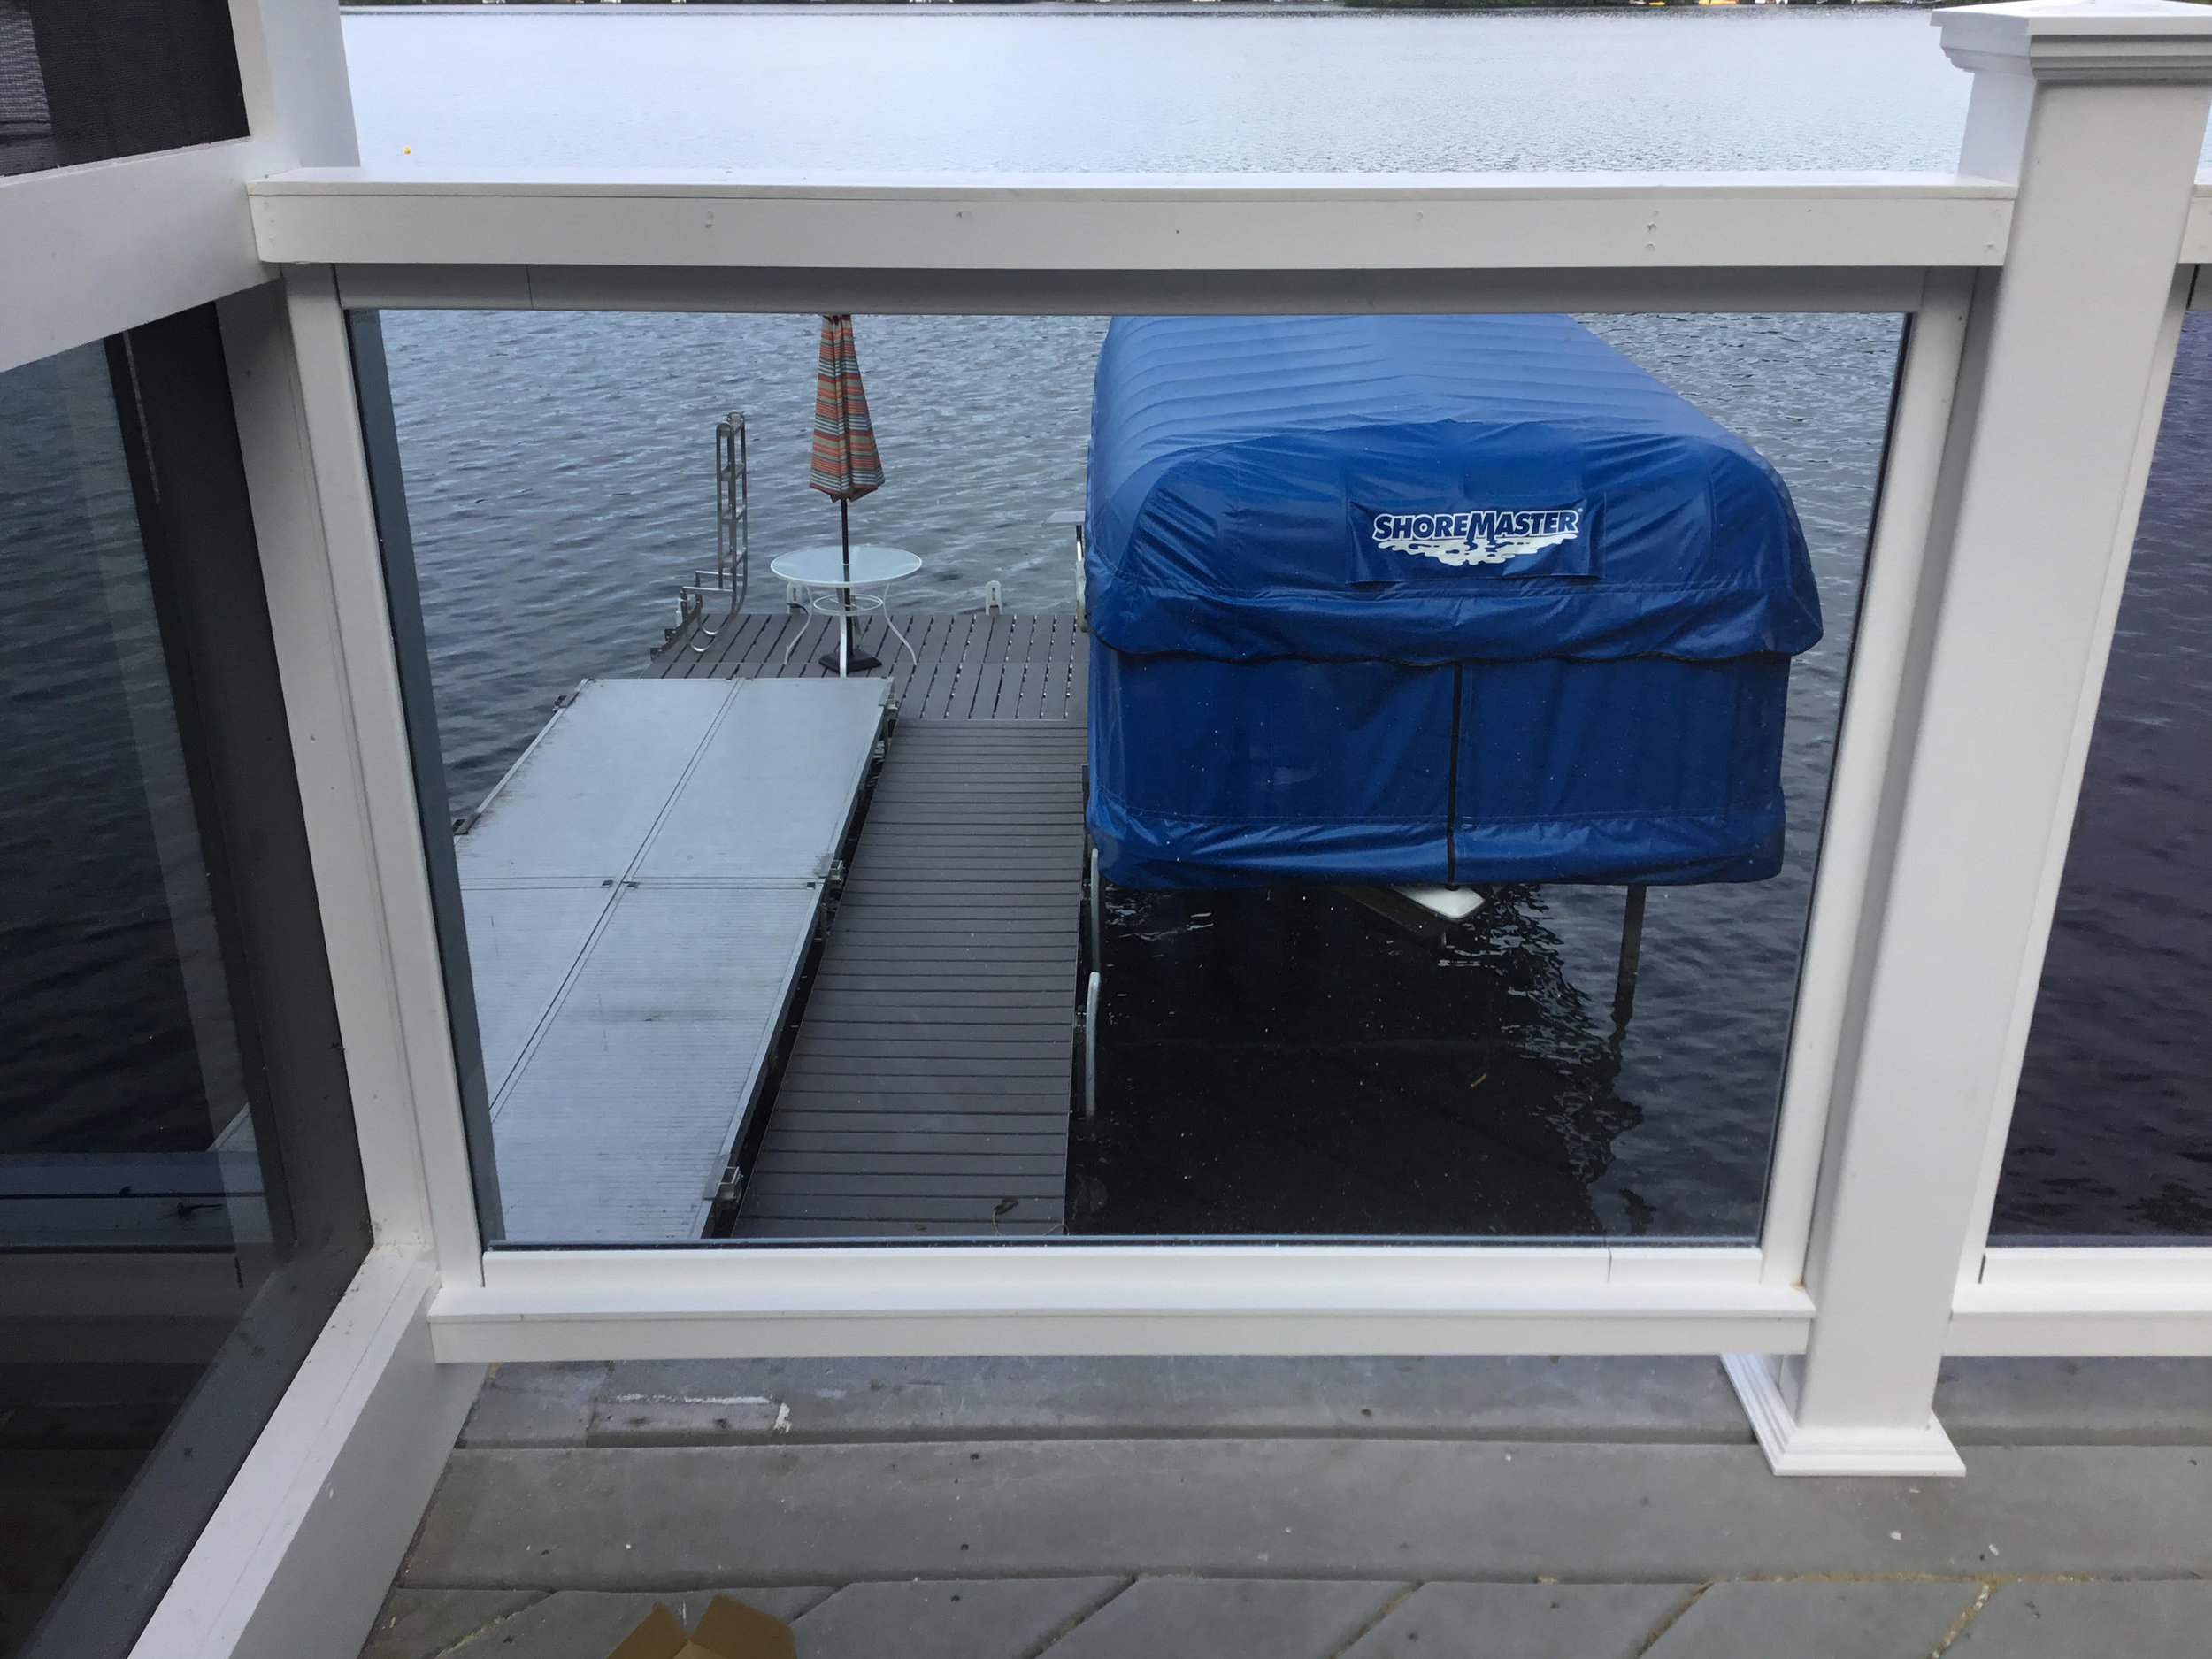 NEw shore master dock added